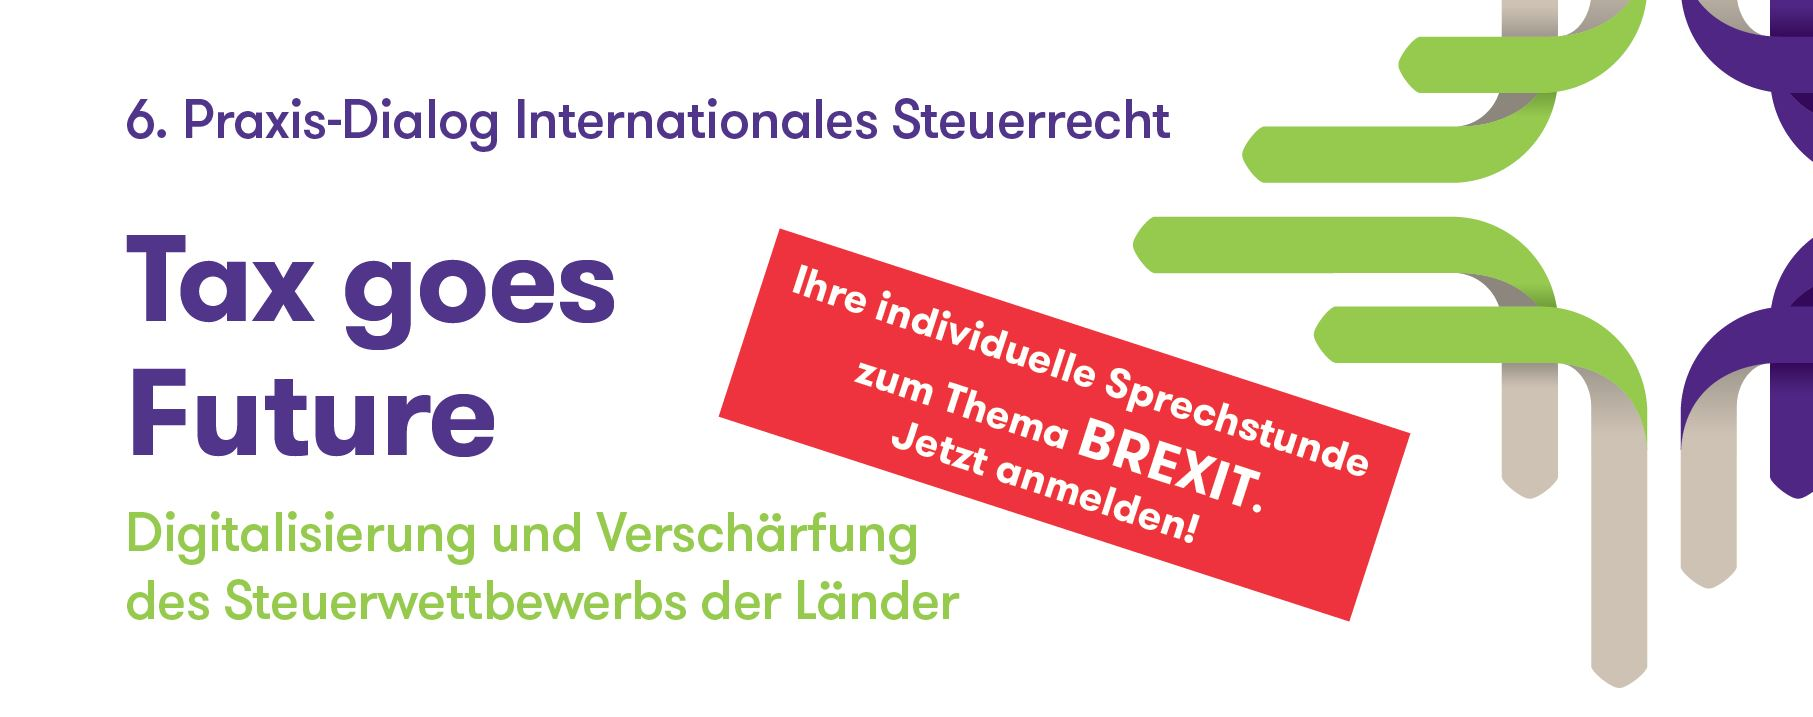 6. Praxis-Dialog Internationales Steuerrecht